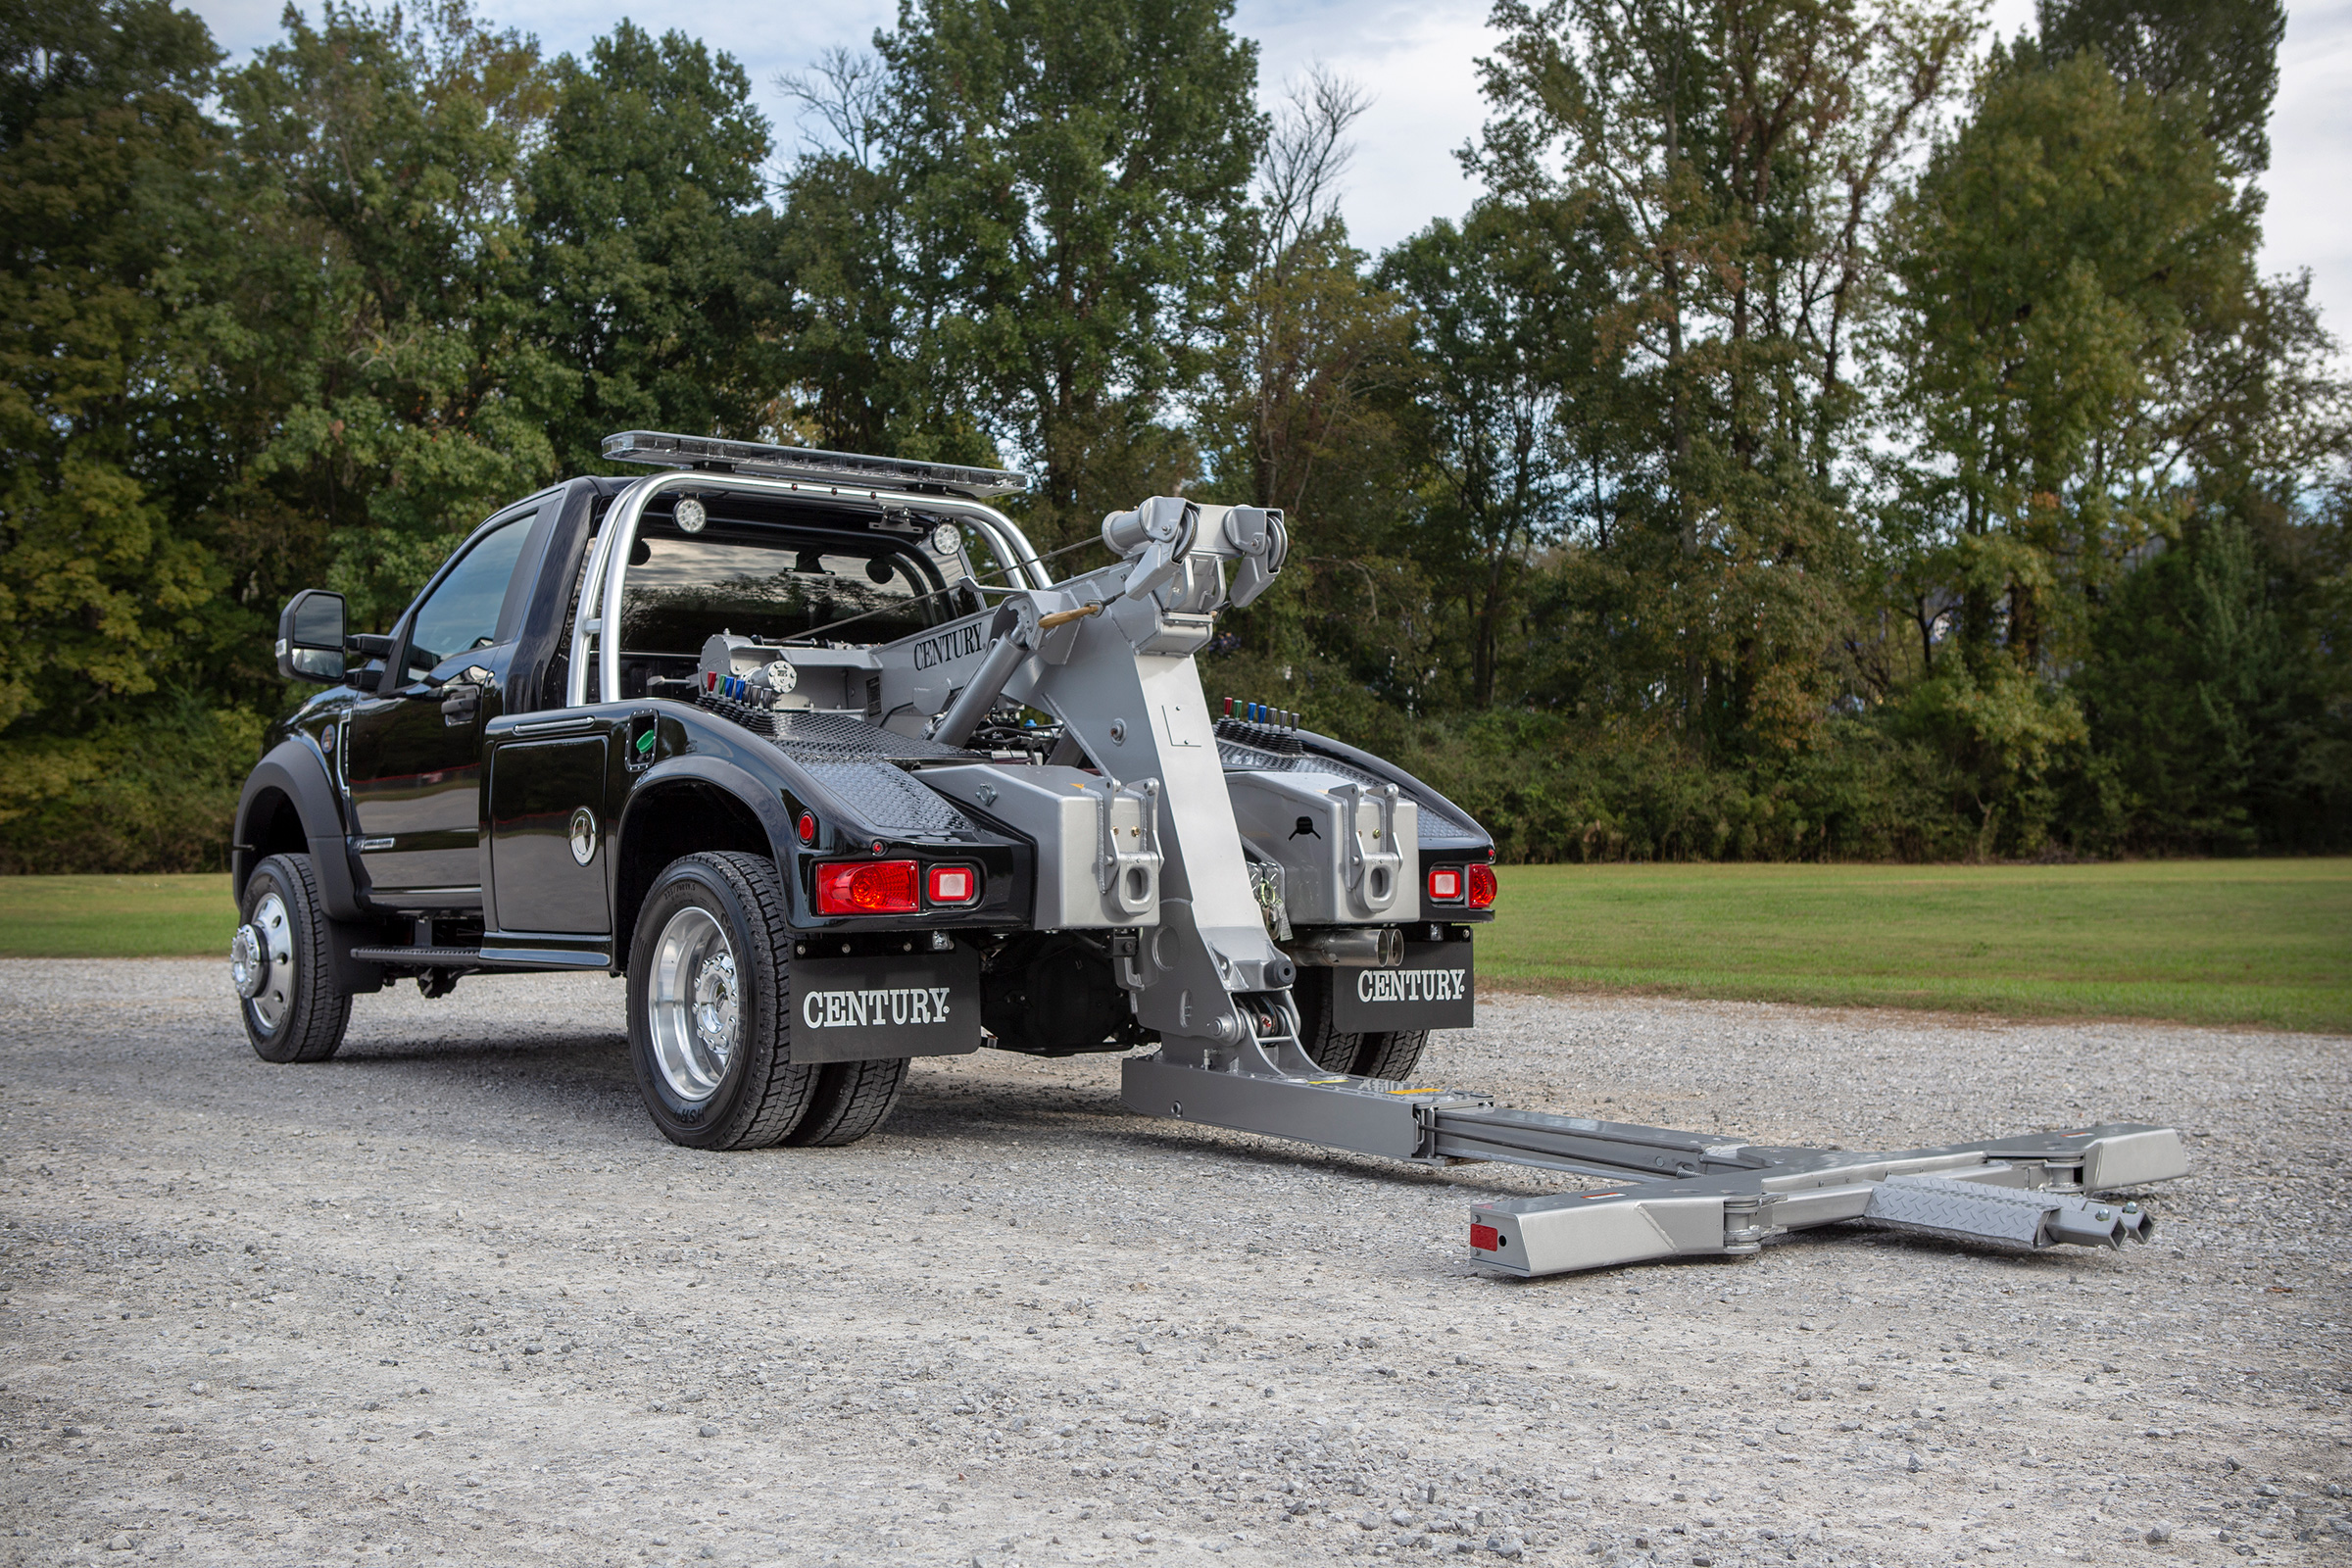 Century® 312 Express-Series Generation 2 Light-Duty Wrecker on a Ford F-450 Truck Chassis